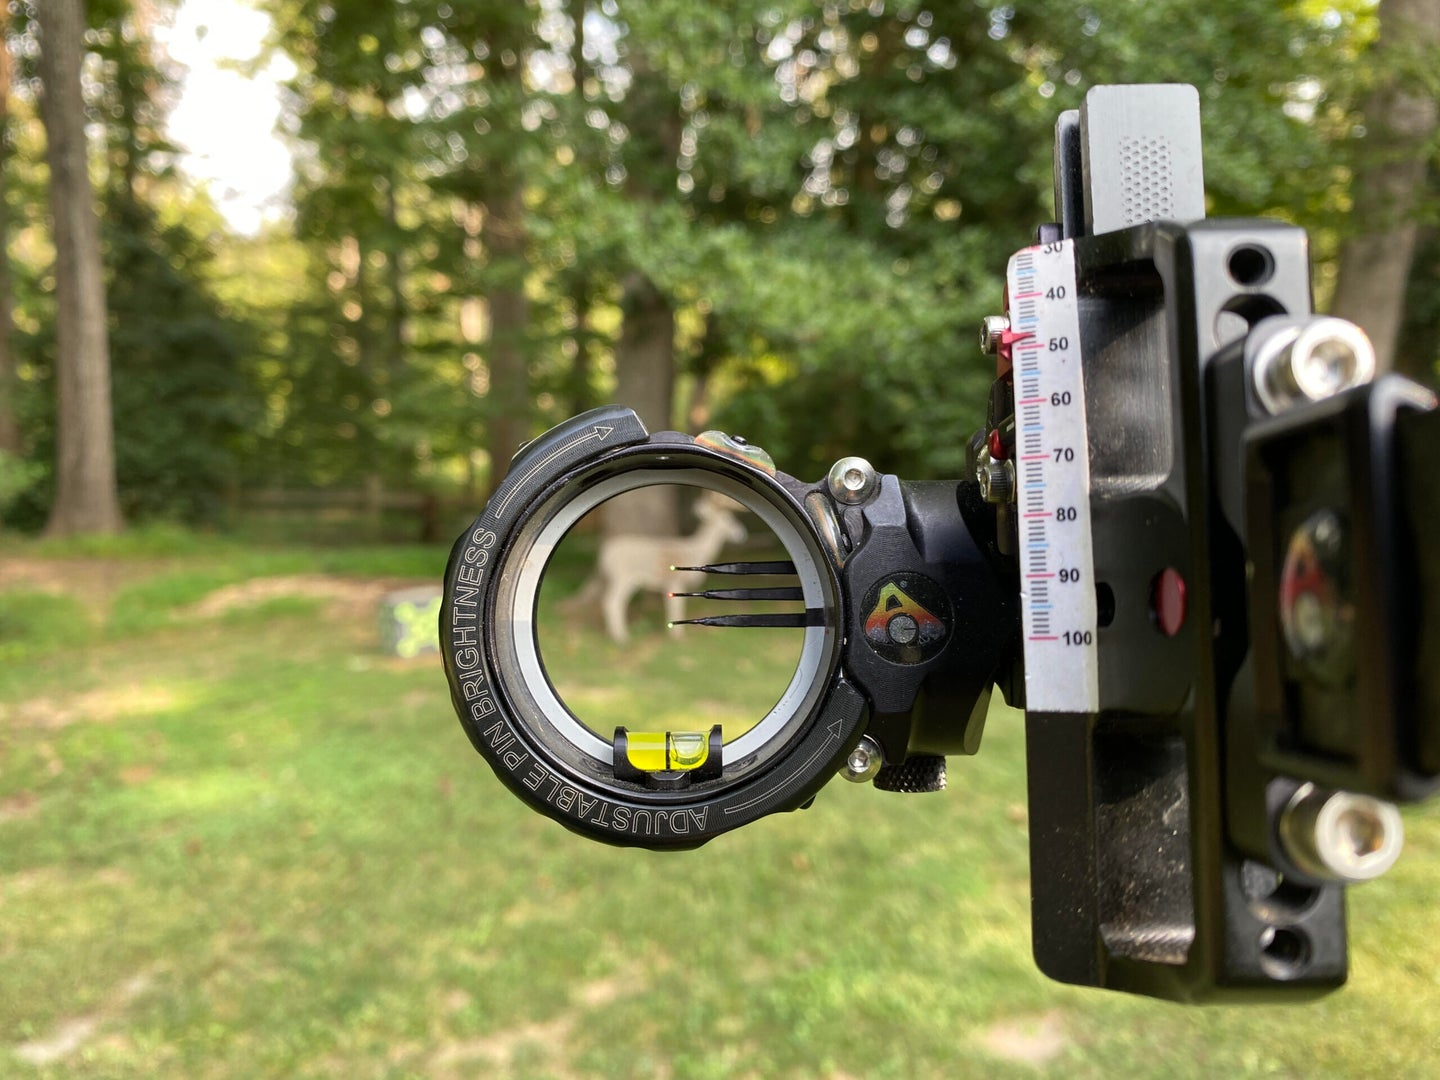 A target pictured through a sight